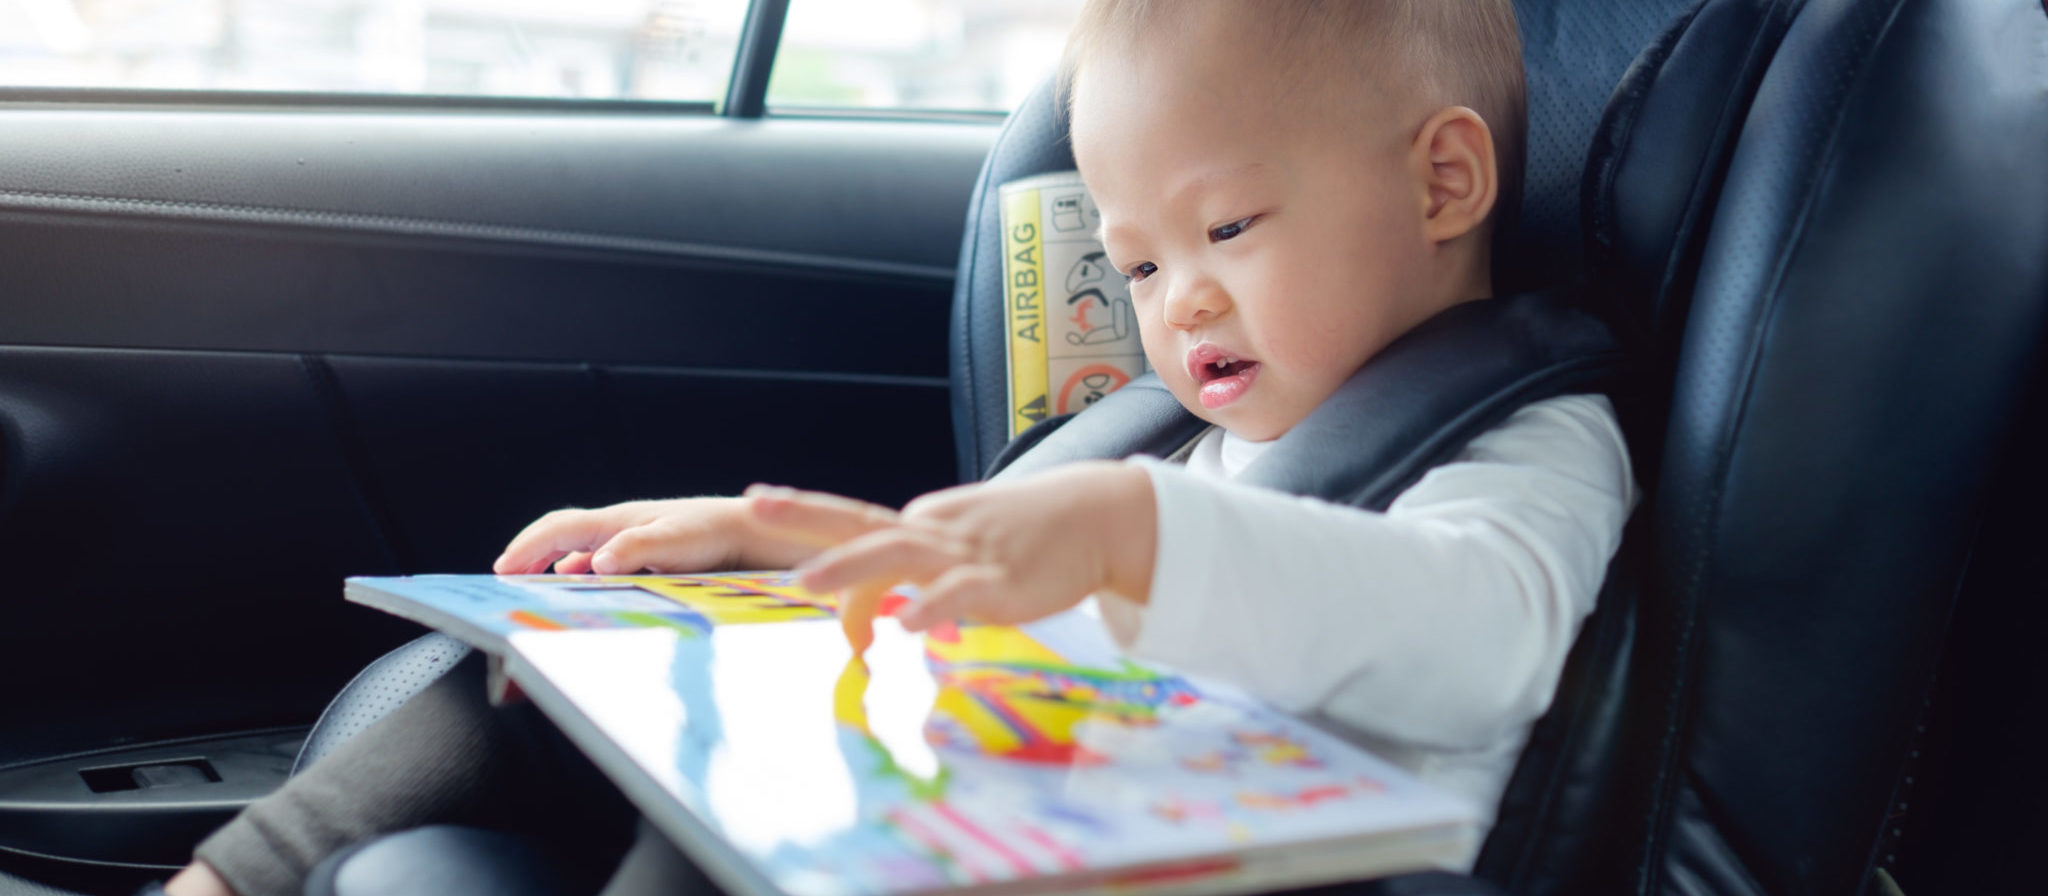 Car activities for 1 year old baby boy can entertain and educate all at once.